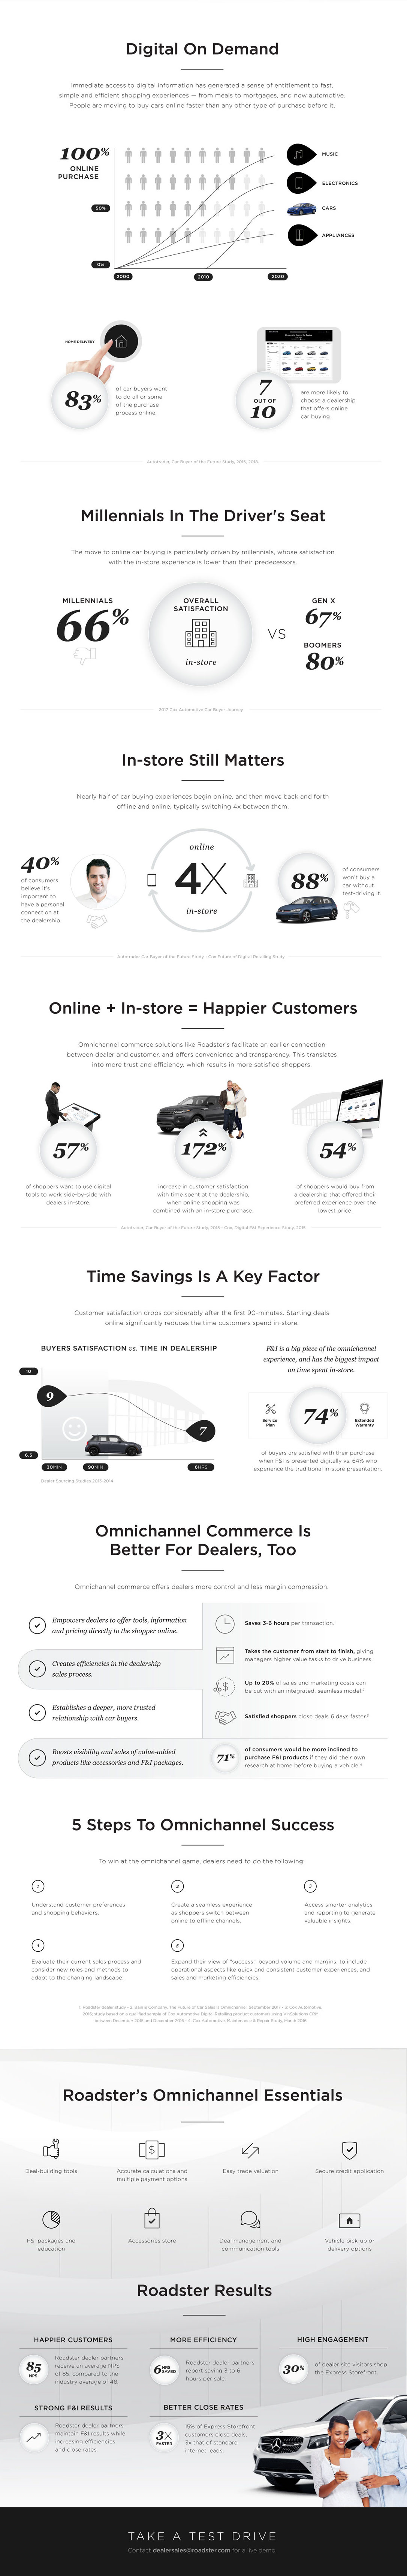 BainCo_Infographic_Single_Final 2_Cropped